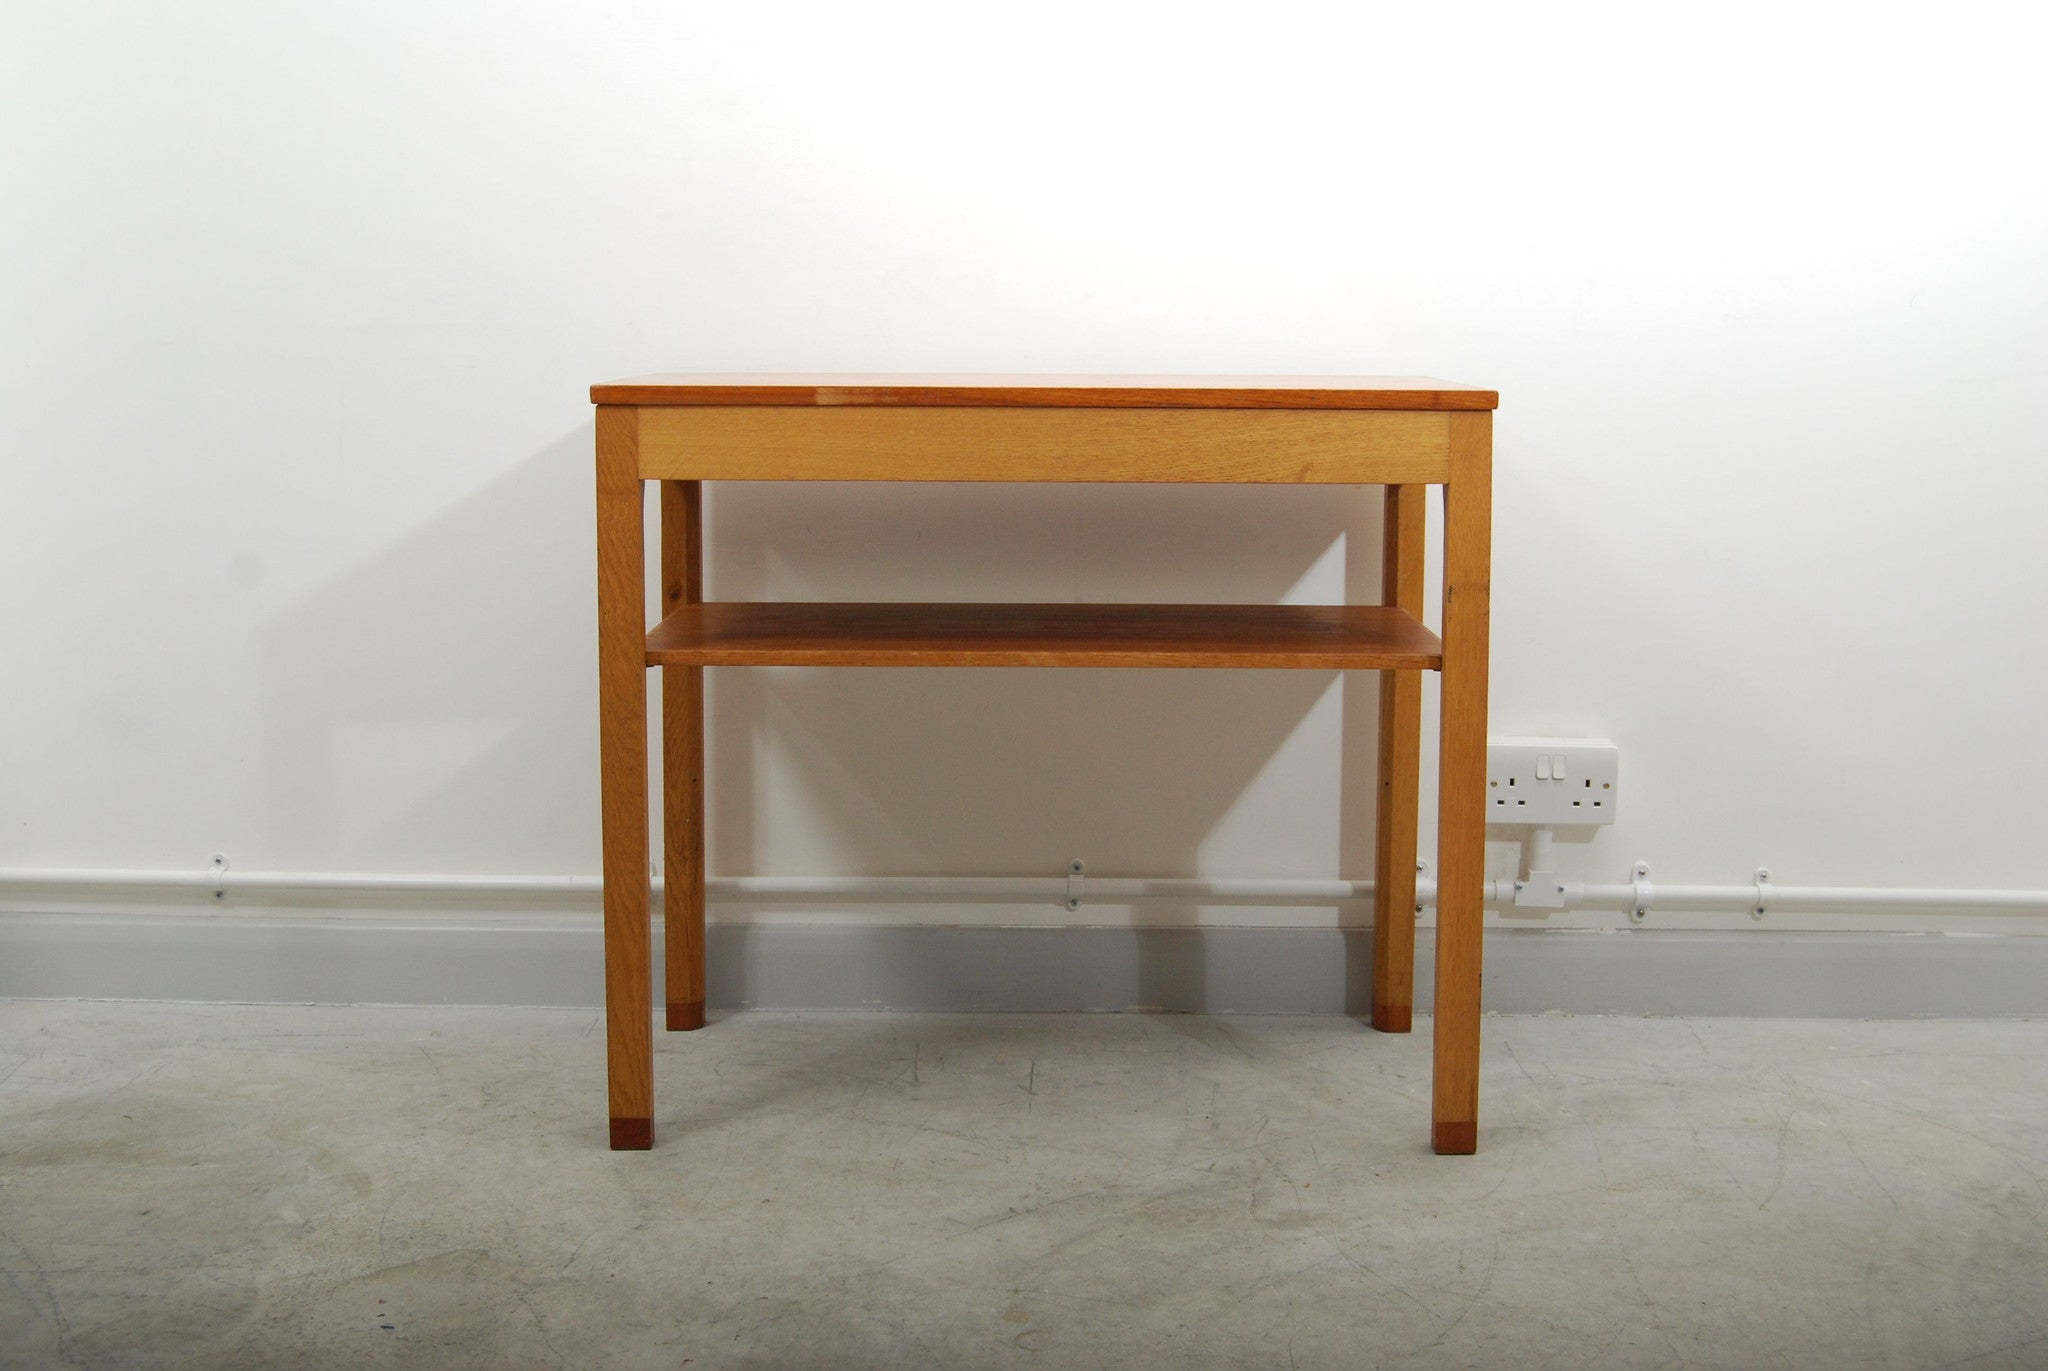 New price: Prison desk by SKM